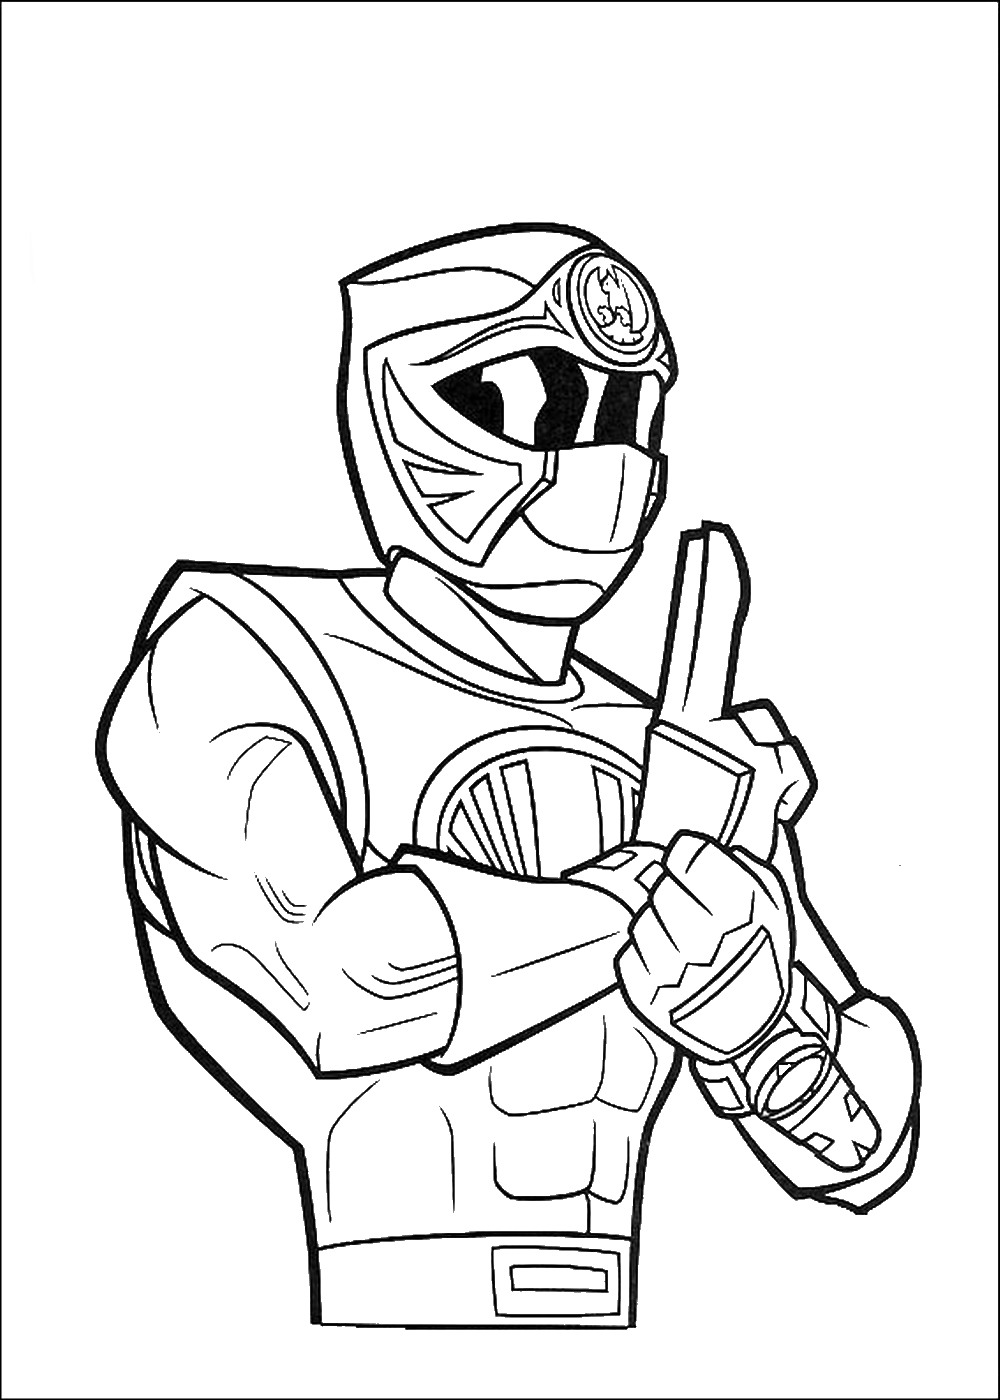 power ranger coloring pages free power rangers coloring pages free large images power ranger free coloring pages